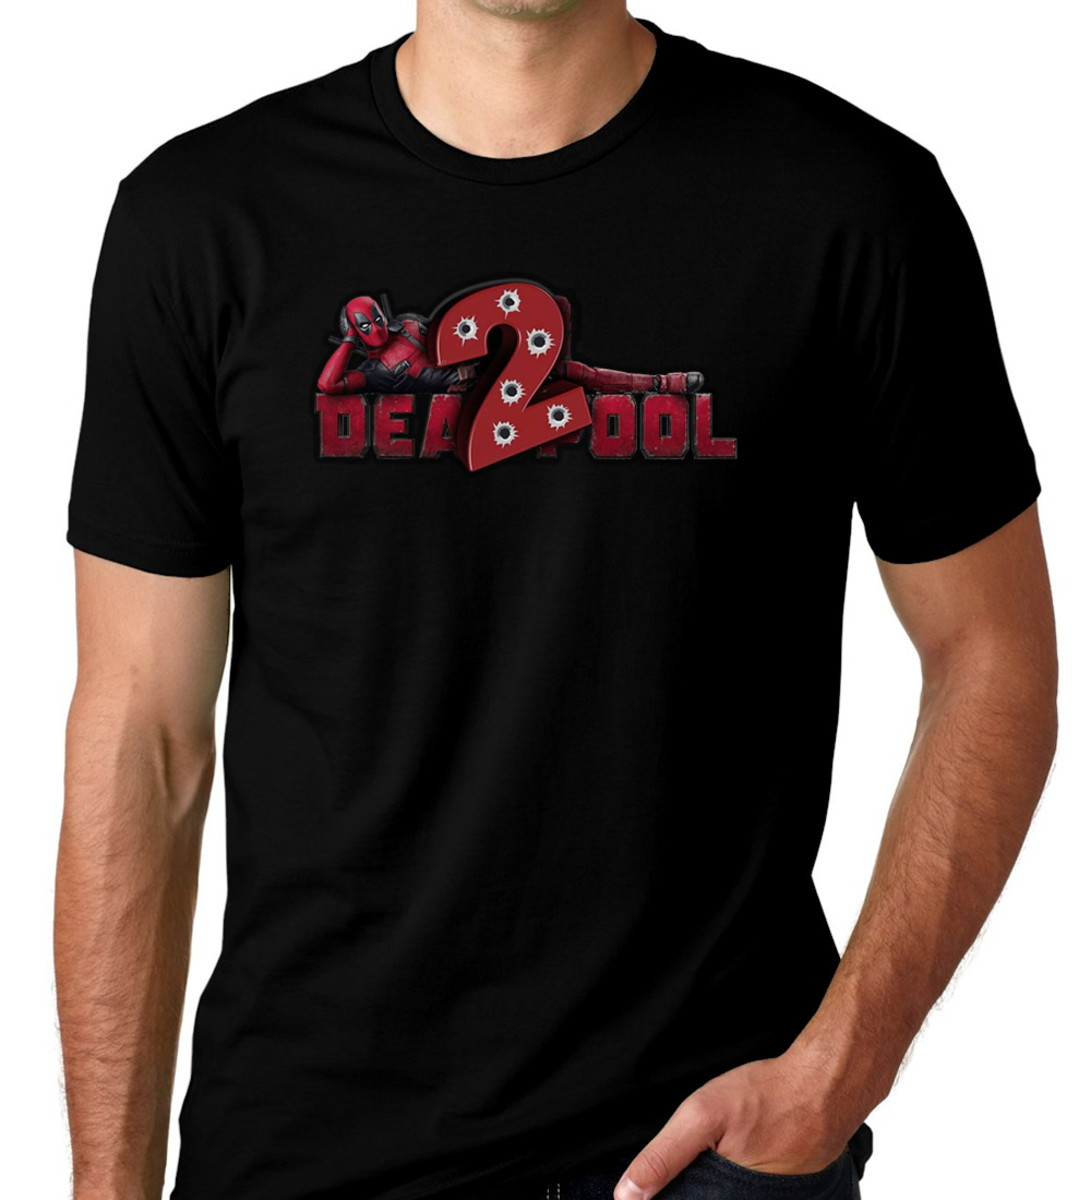 3b0808624 Camisetas Preta Super Héroi Marvel Deadpool 02 no Elo7